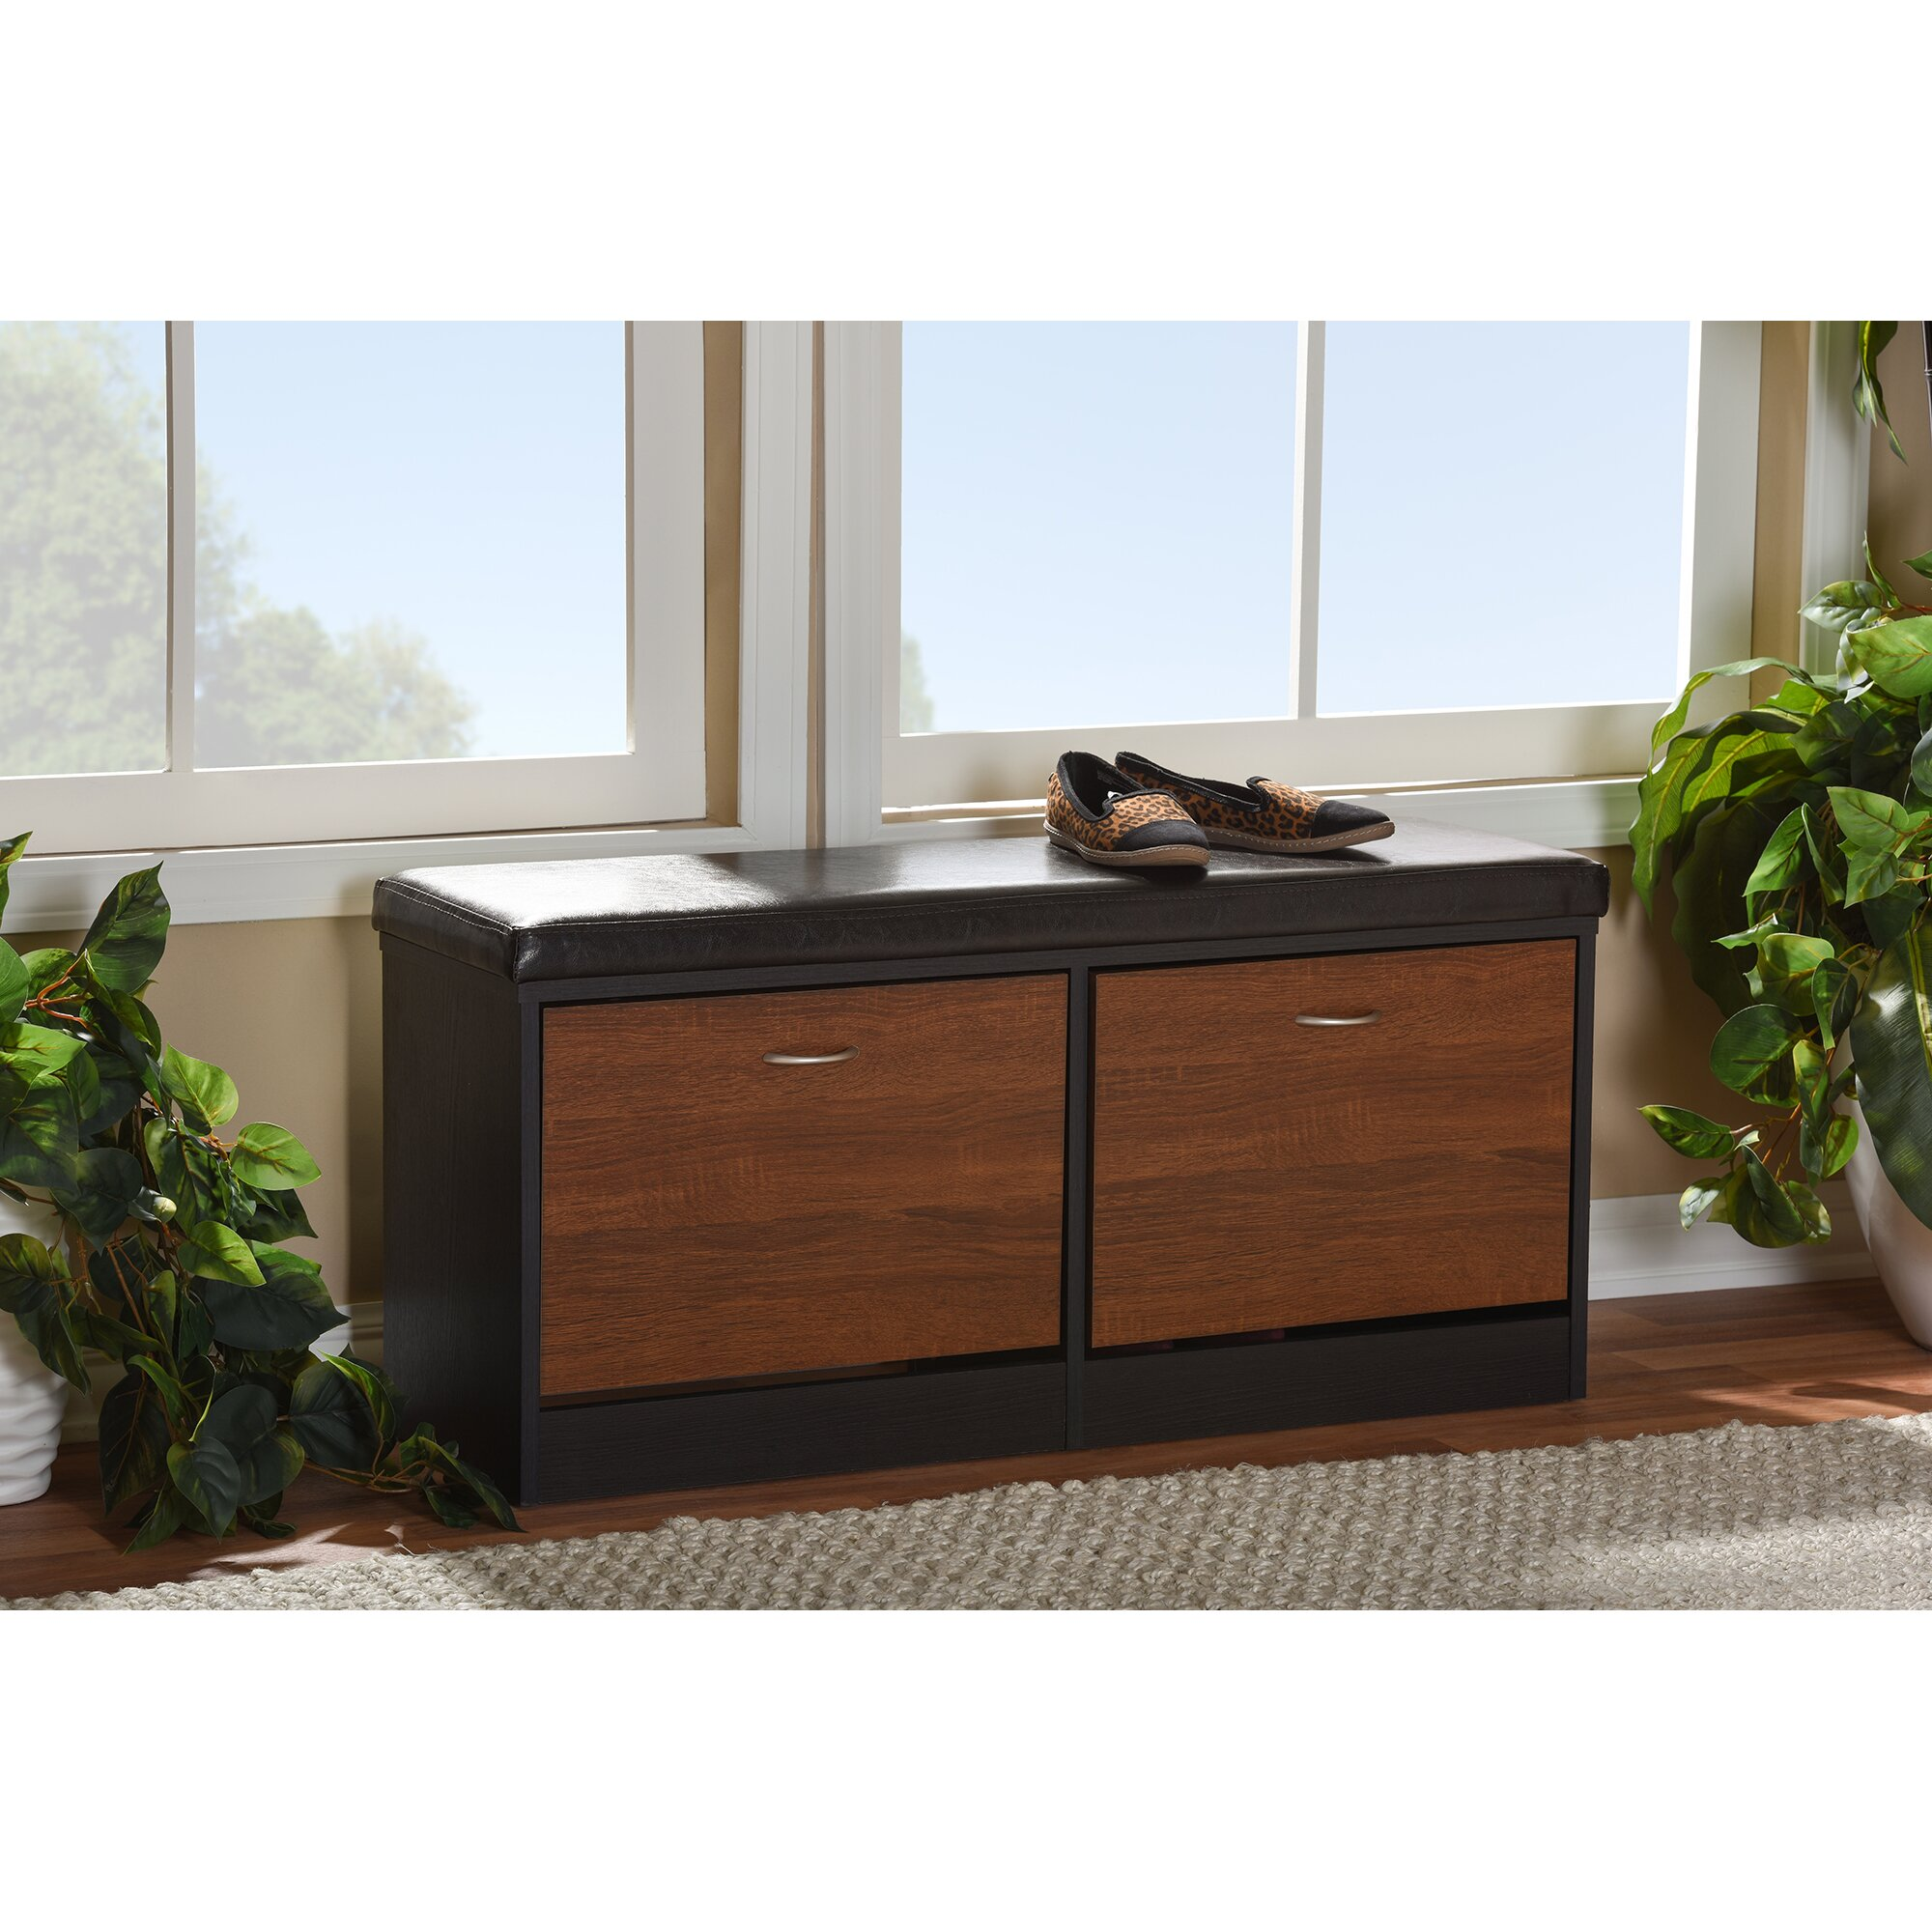 Modern Entryway Benches: Wholesale Interiors Foley Wood Storage Entryway Bench